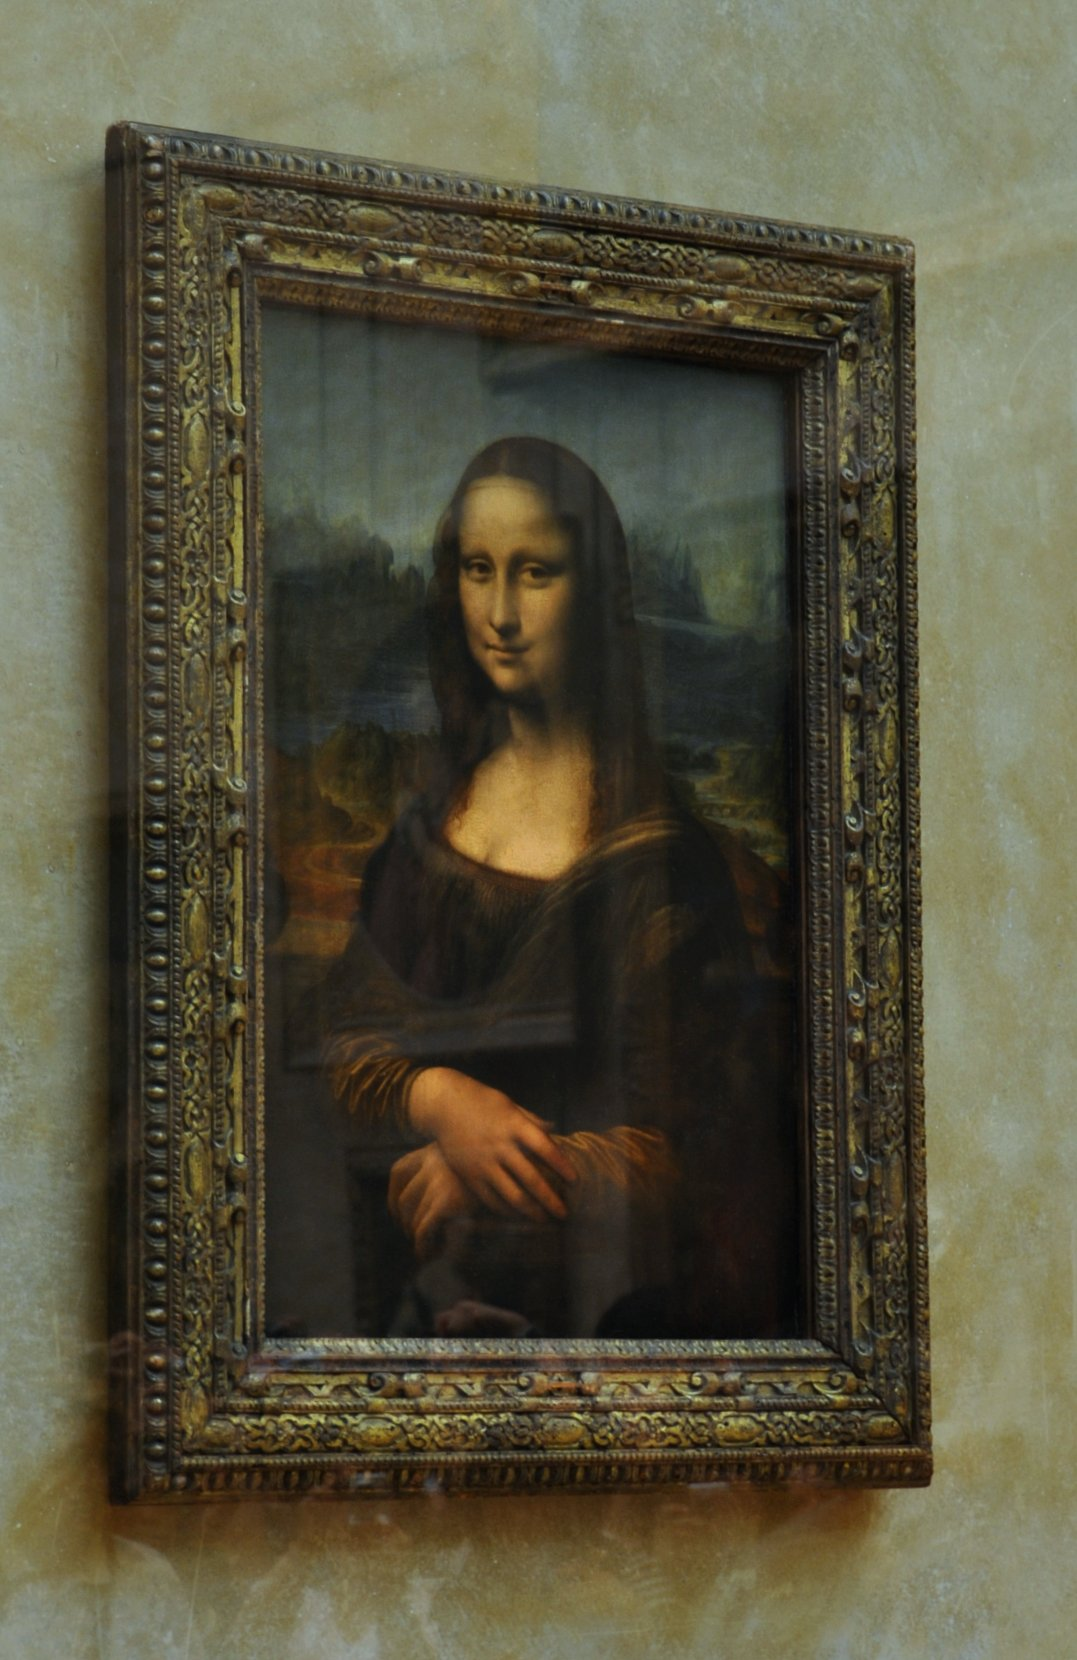 The famous Mona Lisa painting by Leonardo Davinci